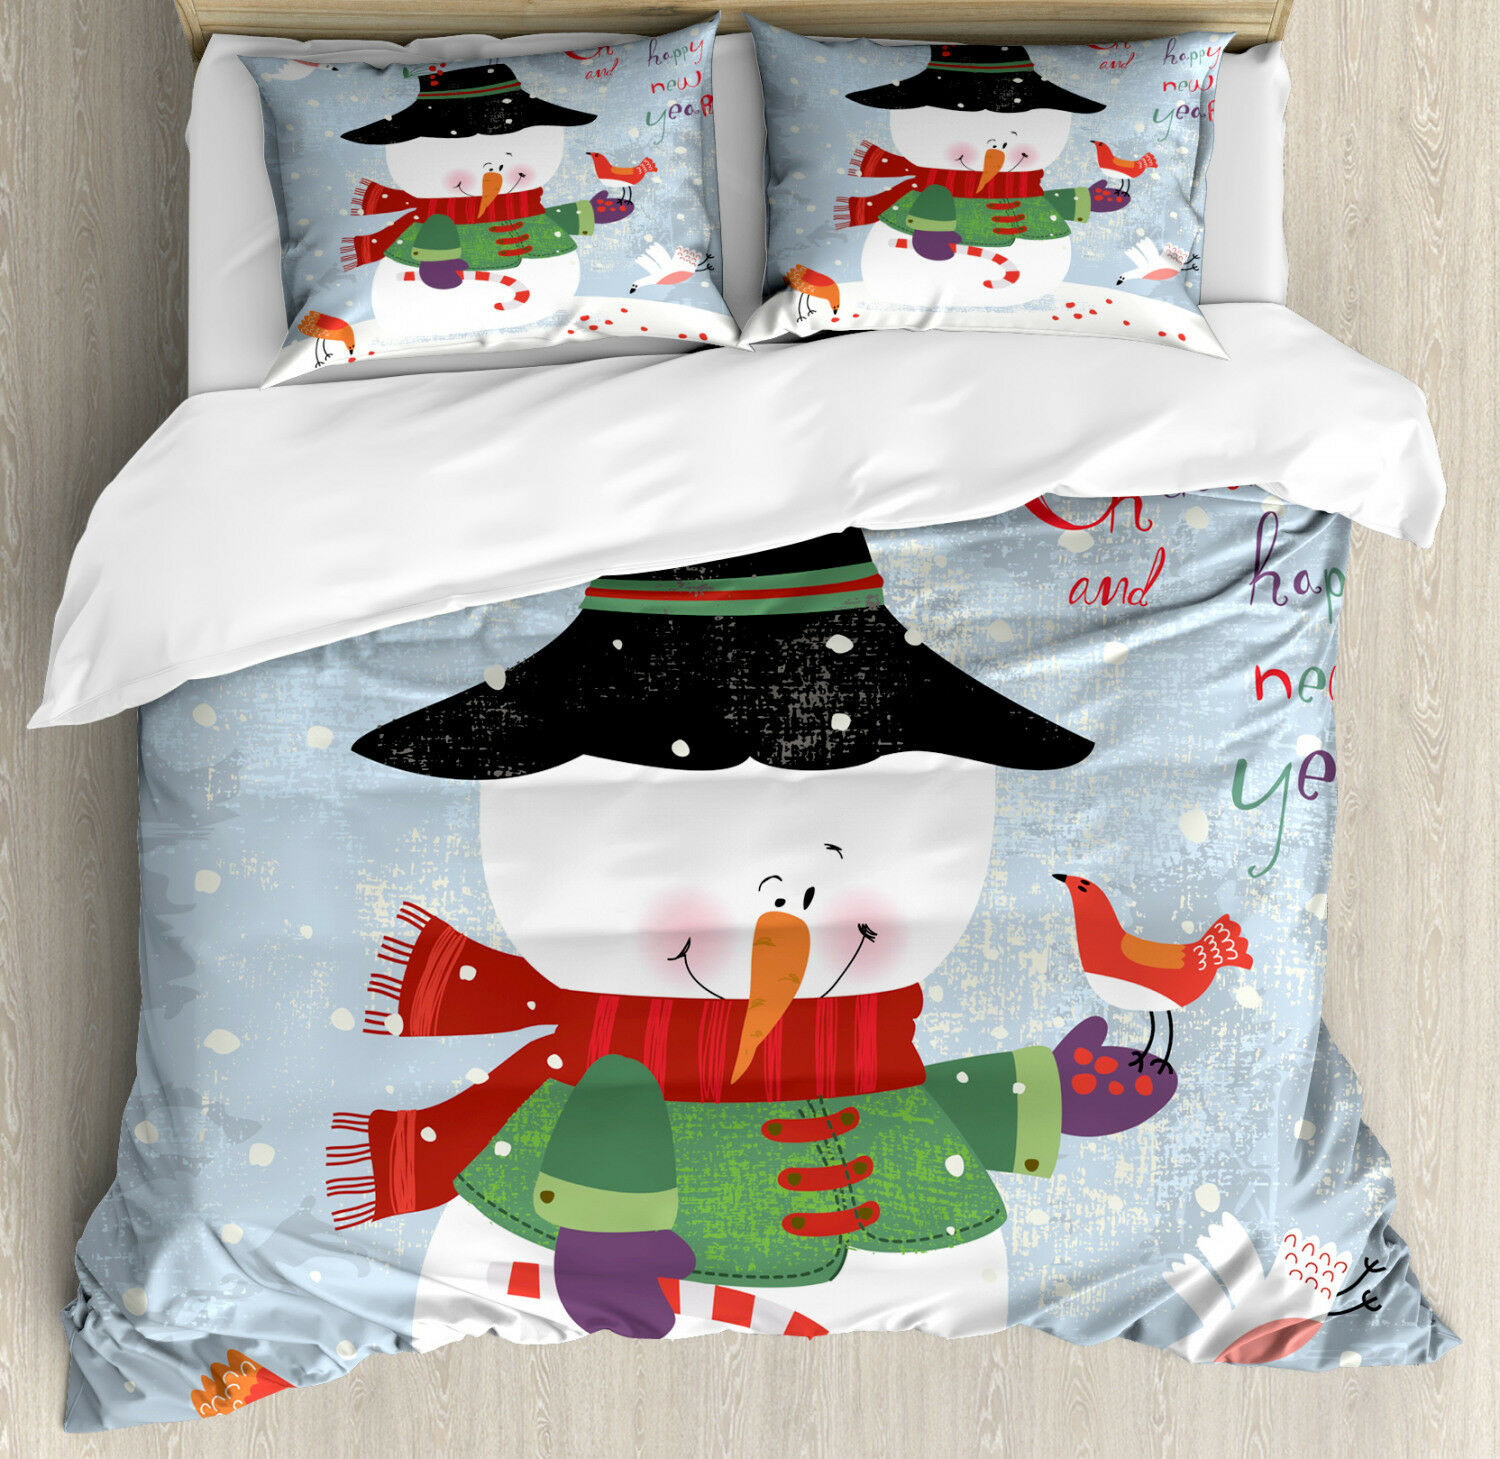 Snowman Duvet Cover Set with Pillow Shams Xmas New Year Grunge Print